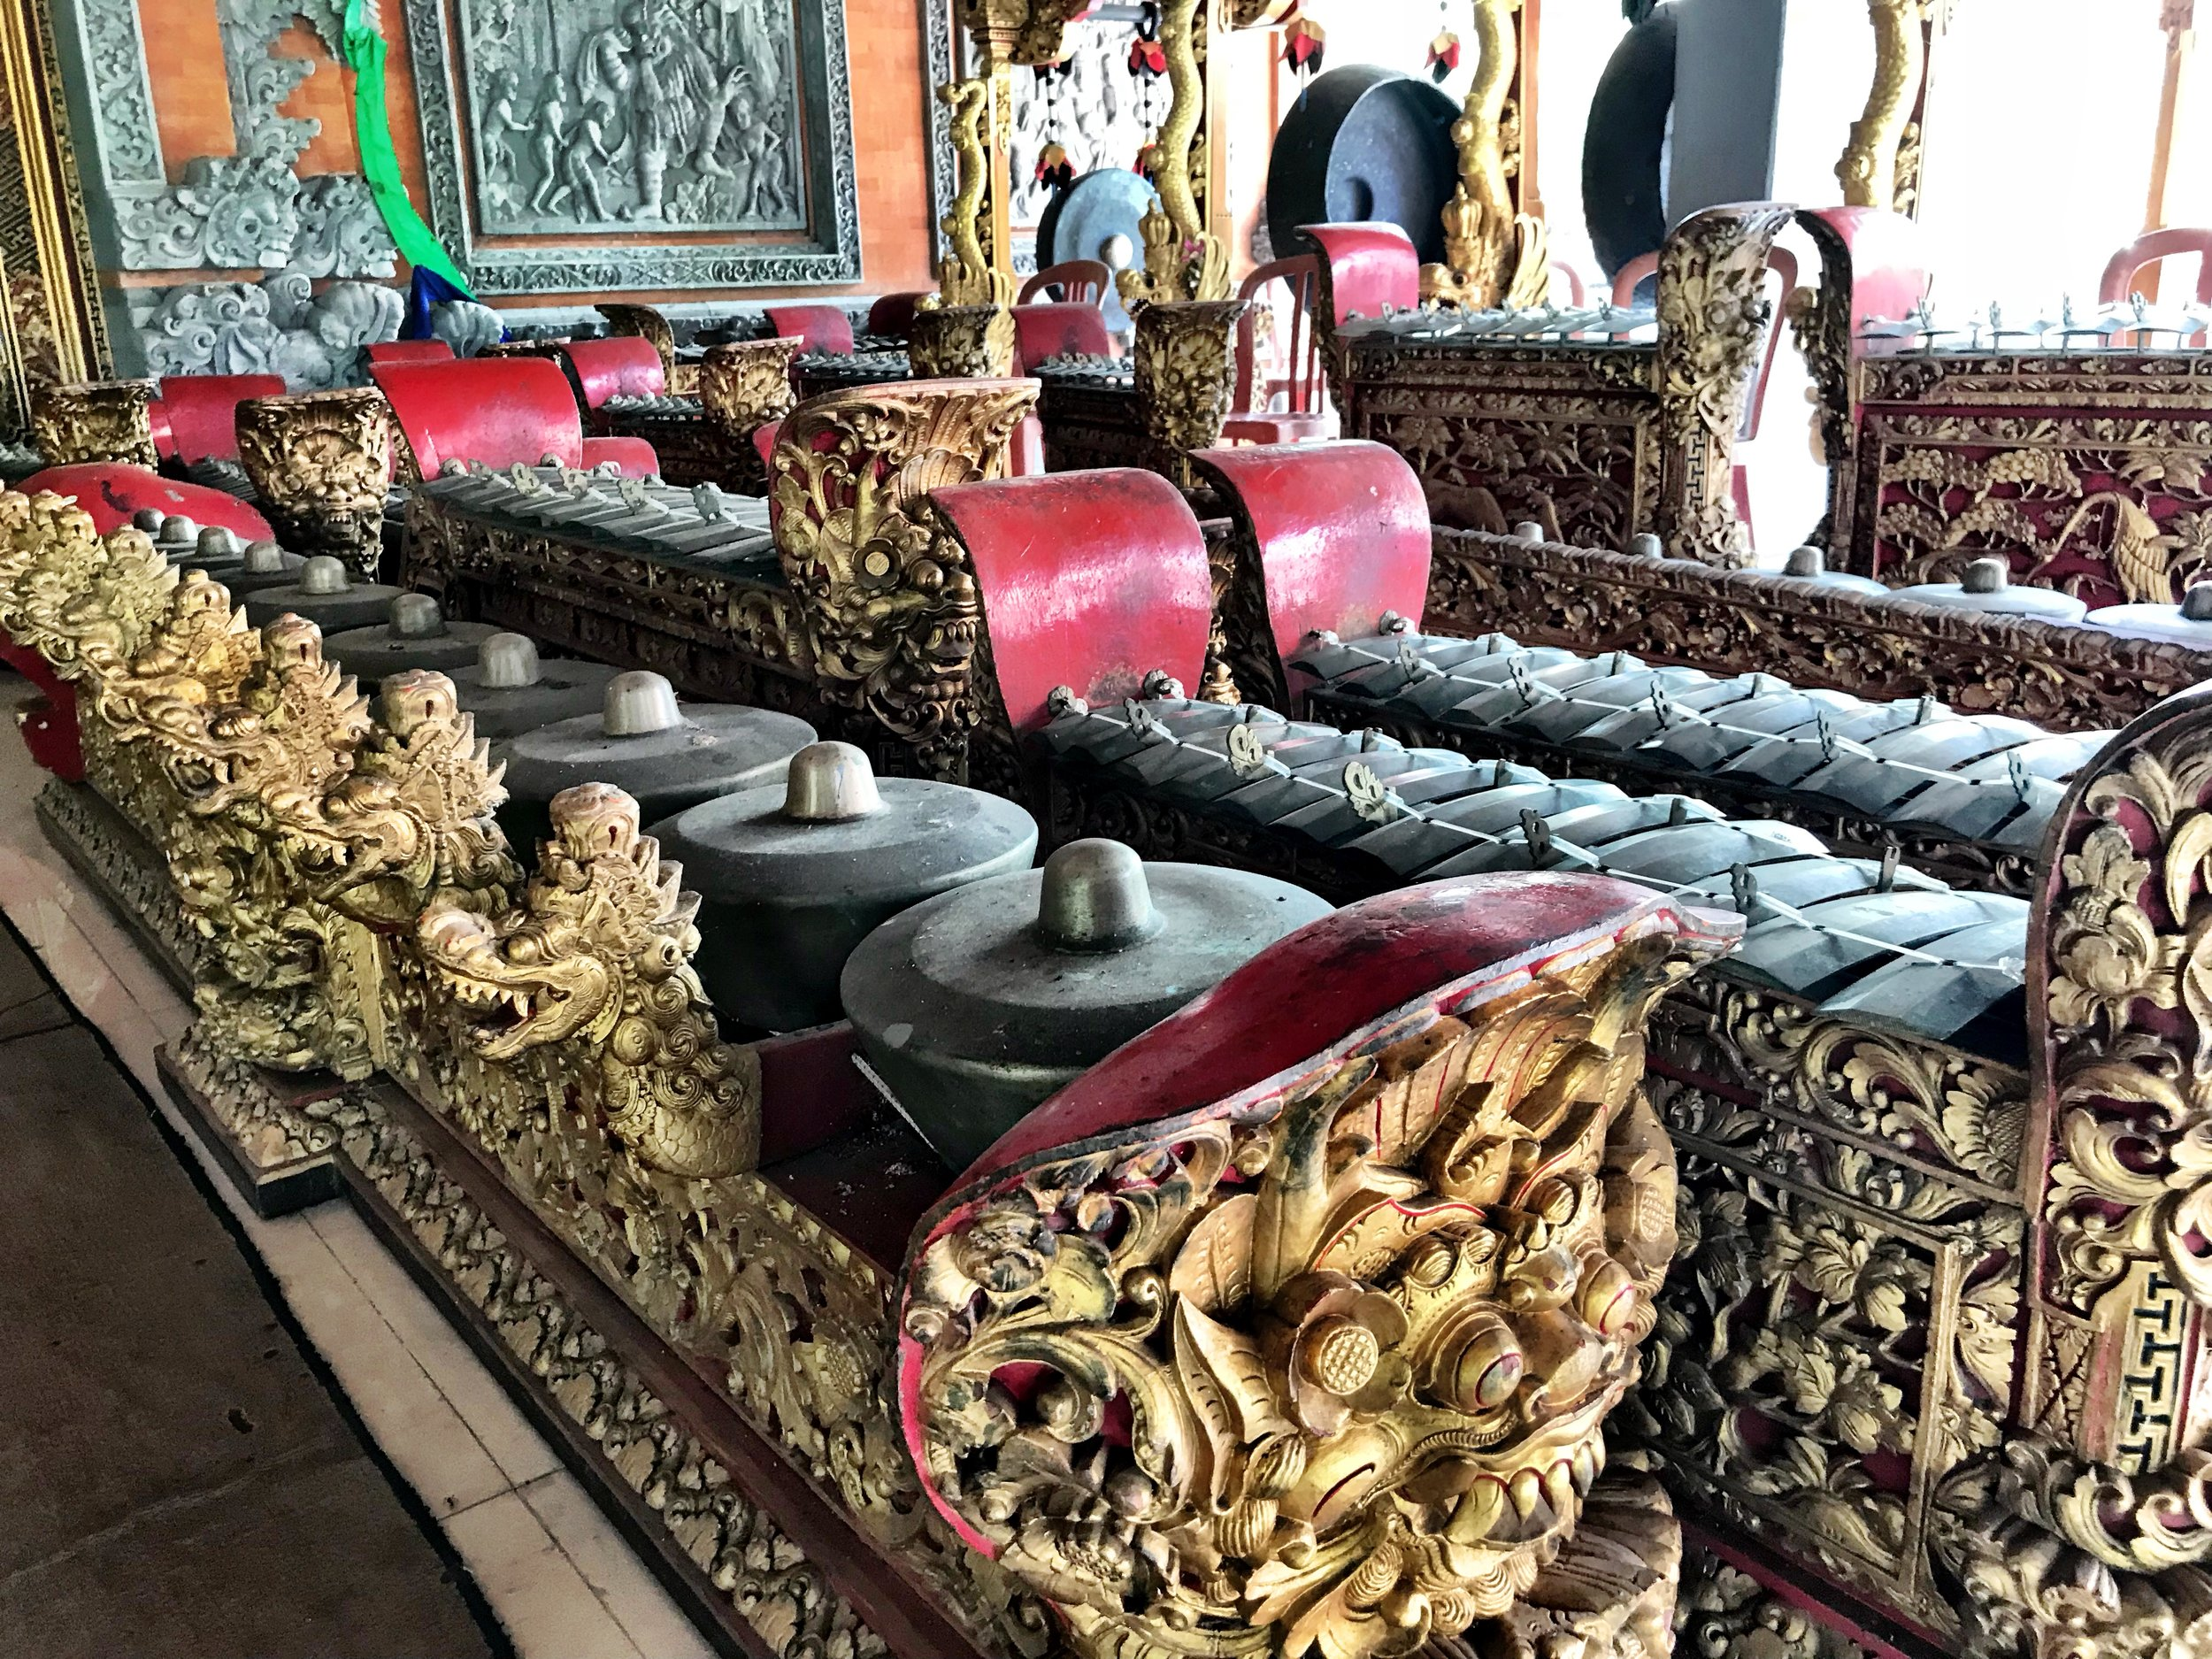 The instruments are intricately carved with creatures from Balinese mythology